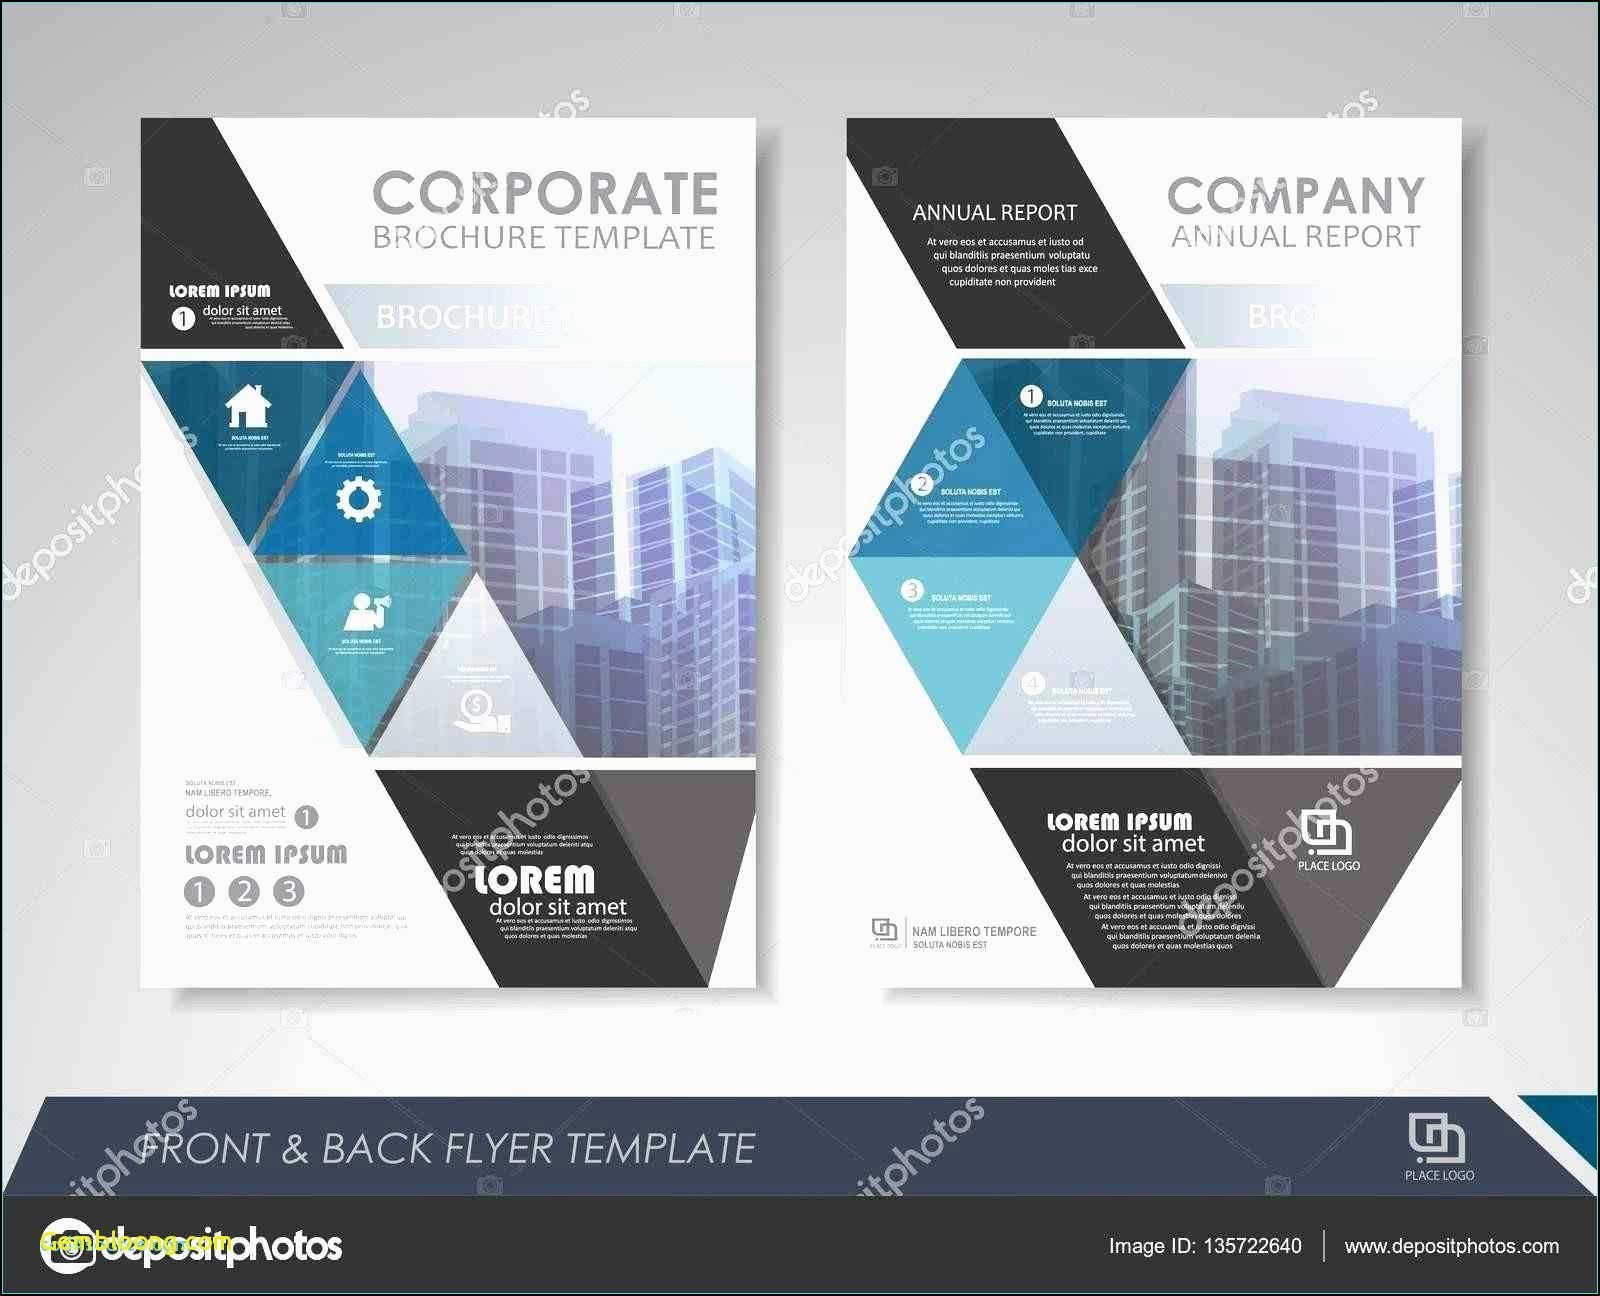 002 Awesome Photoshop Brochure Design Template Free Download High Def